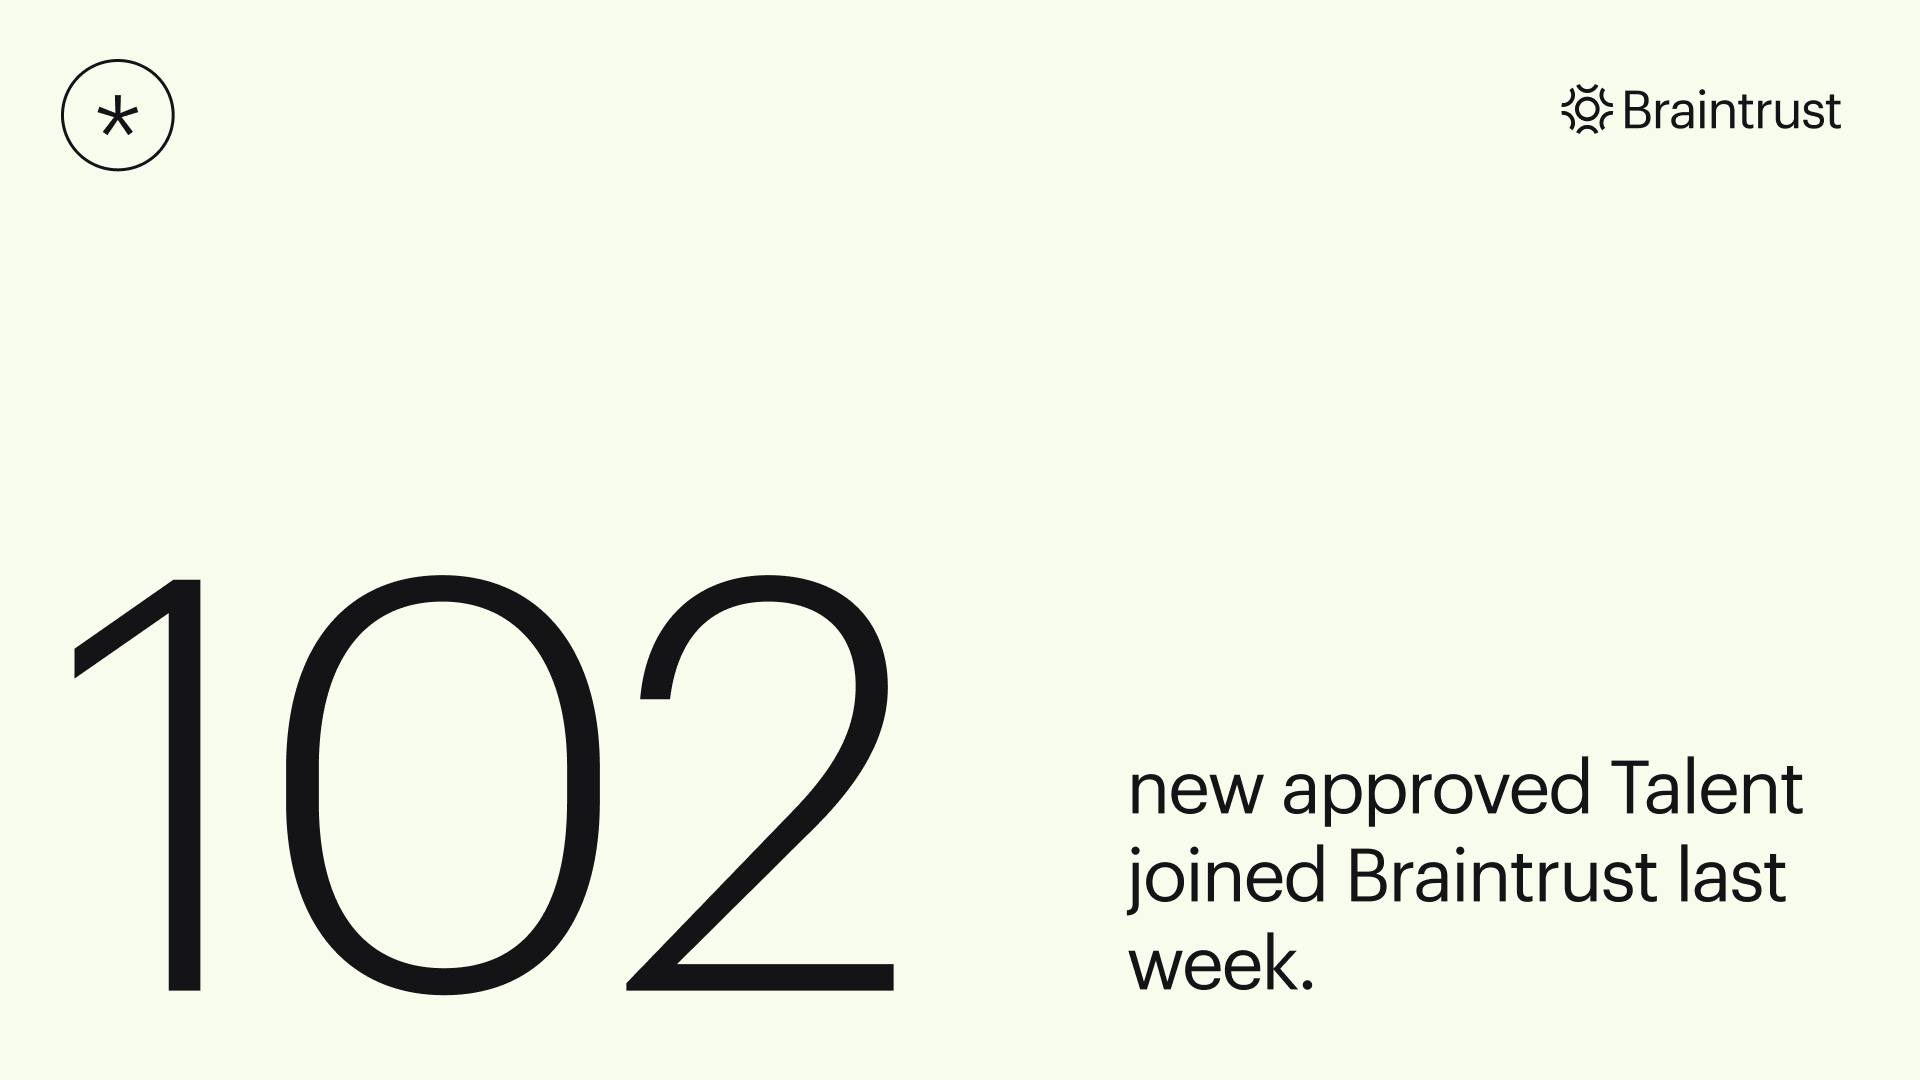 Braintrust growth report july 22 2021 102 new approved talent